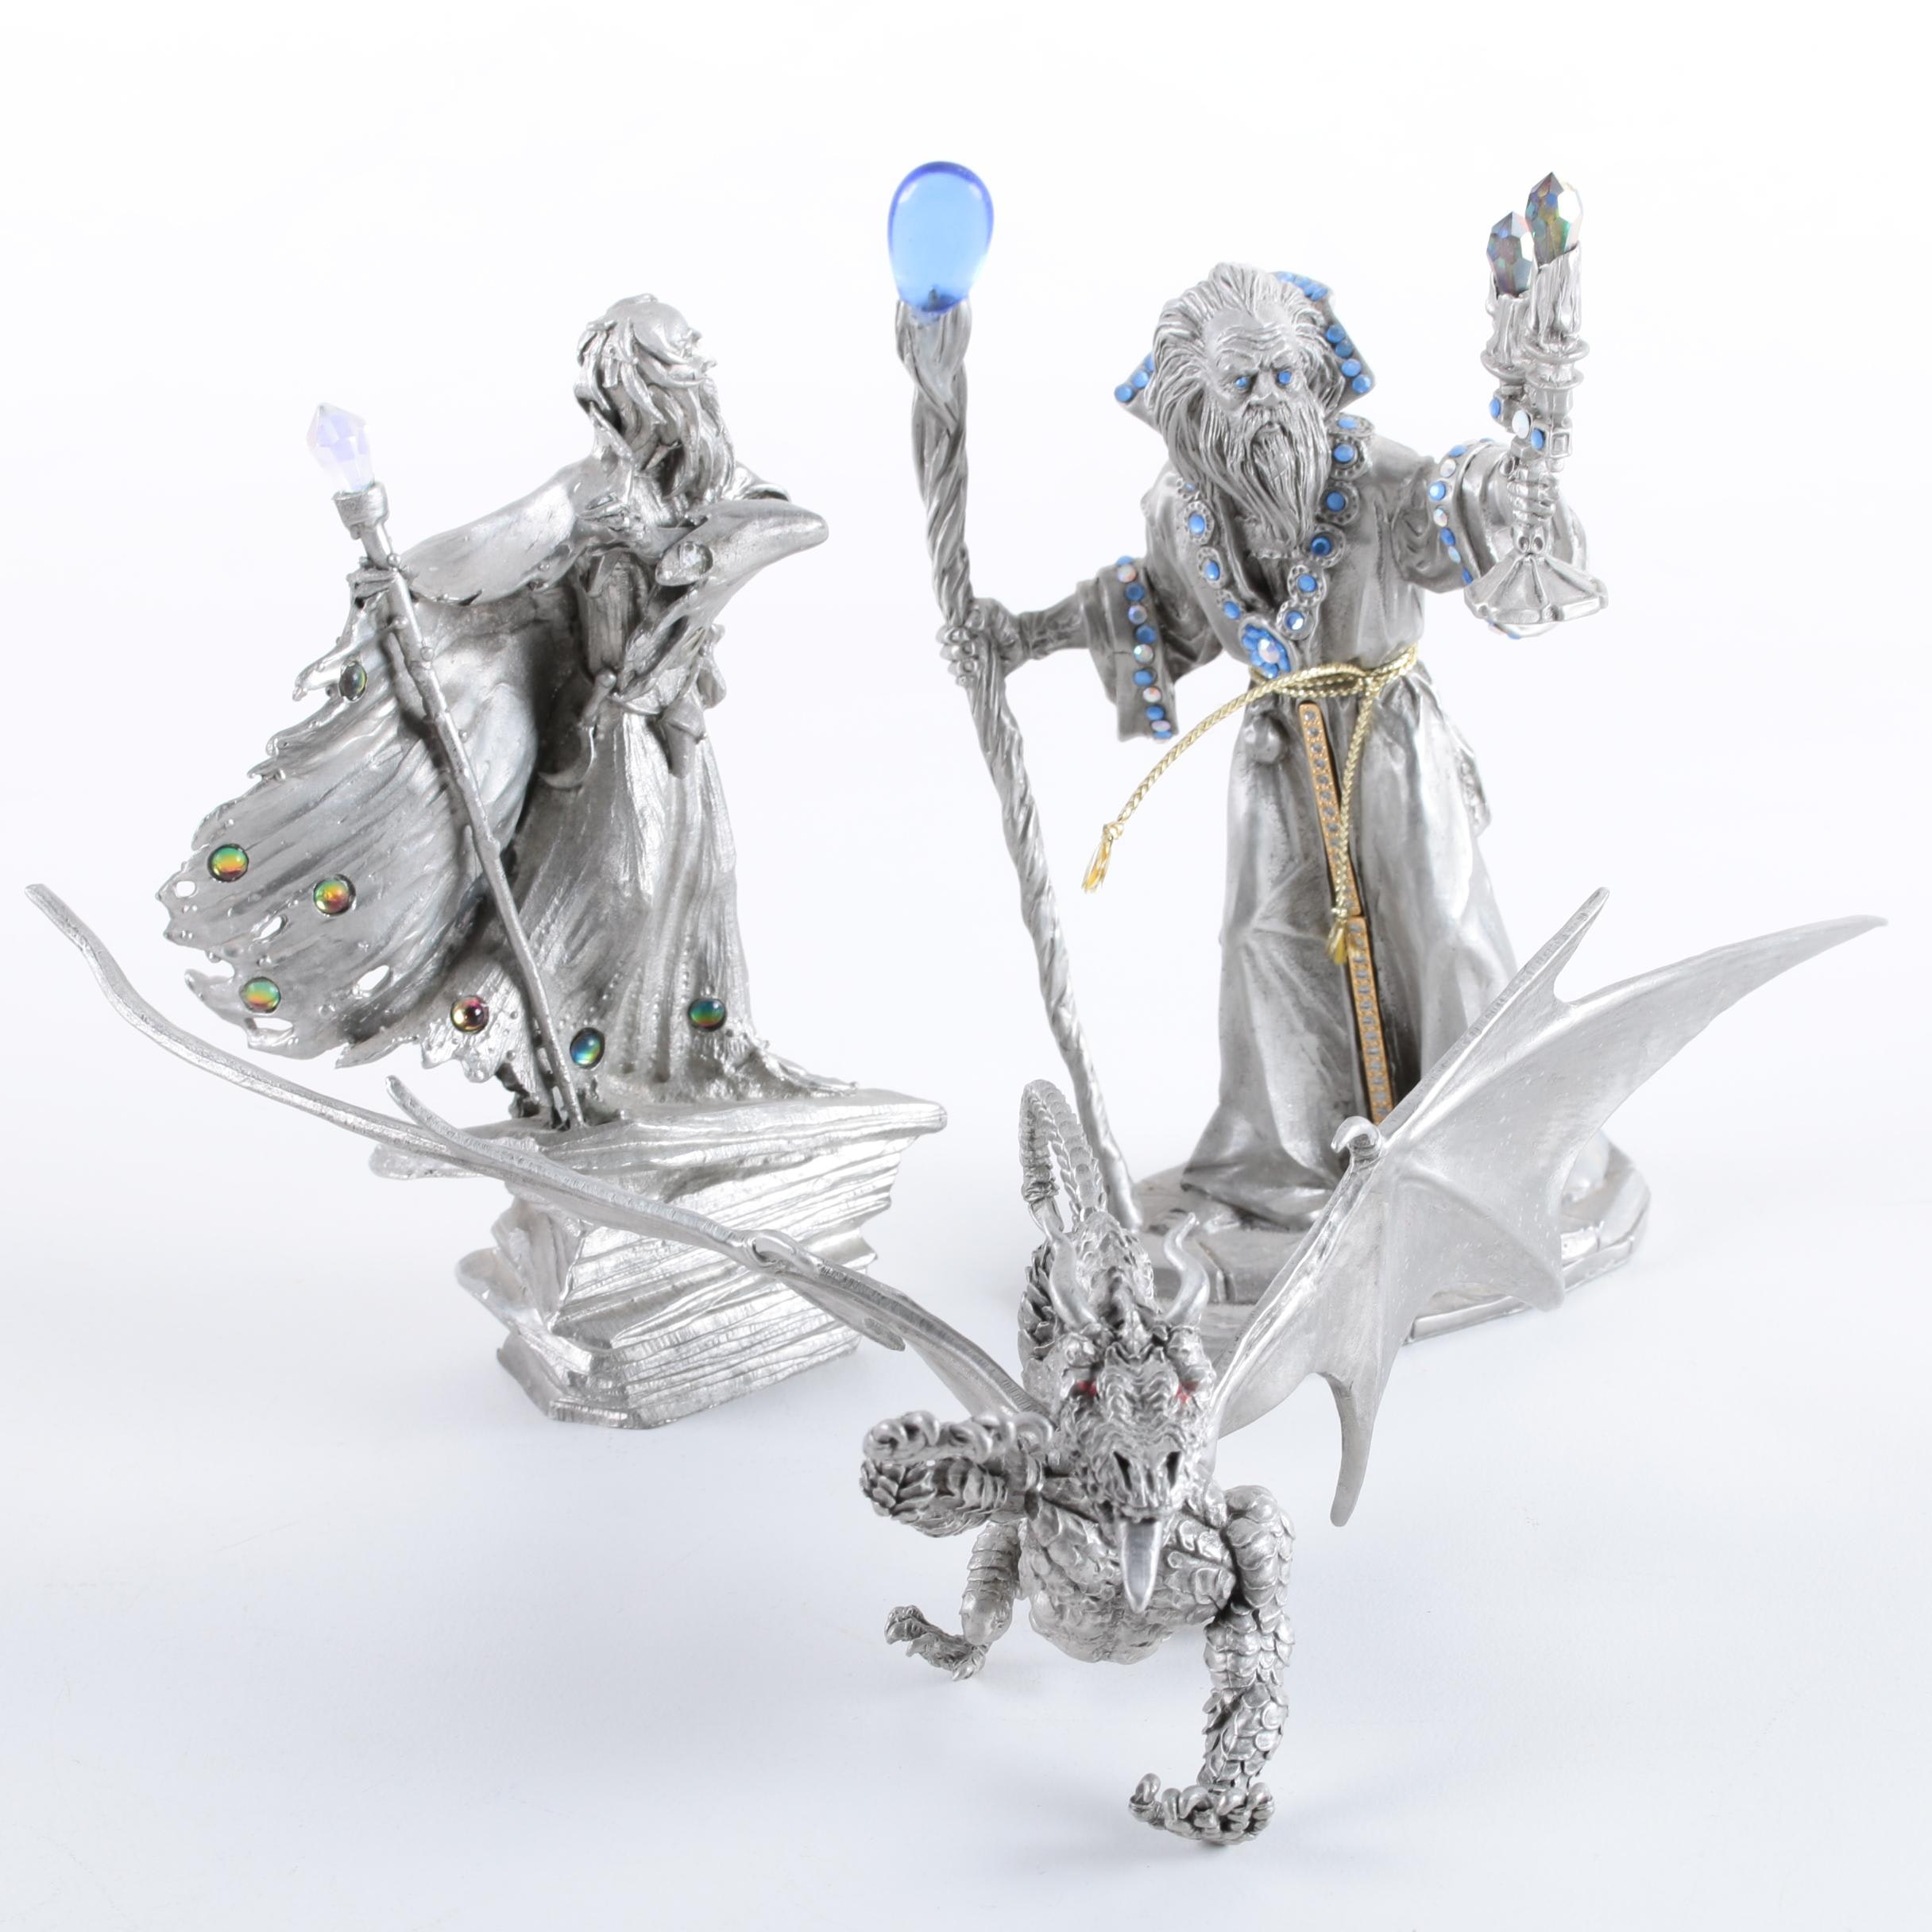 Pewter and Resin Fantasy Figurines